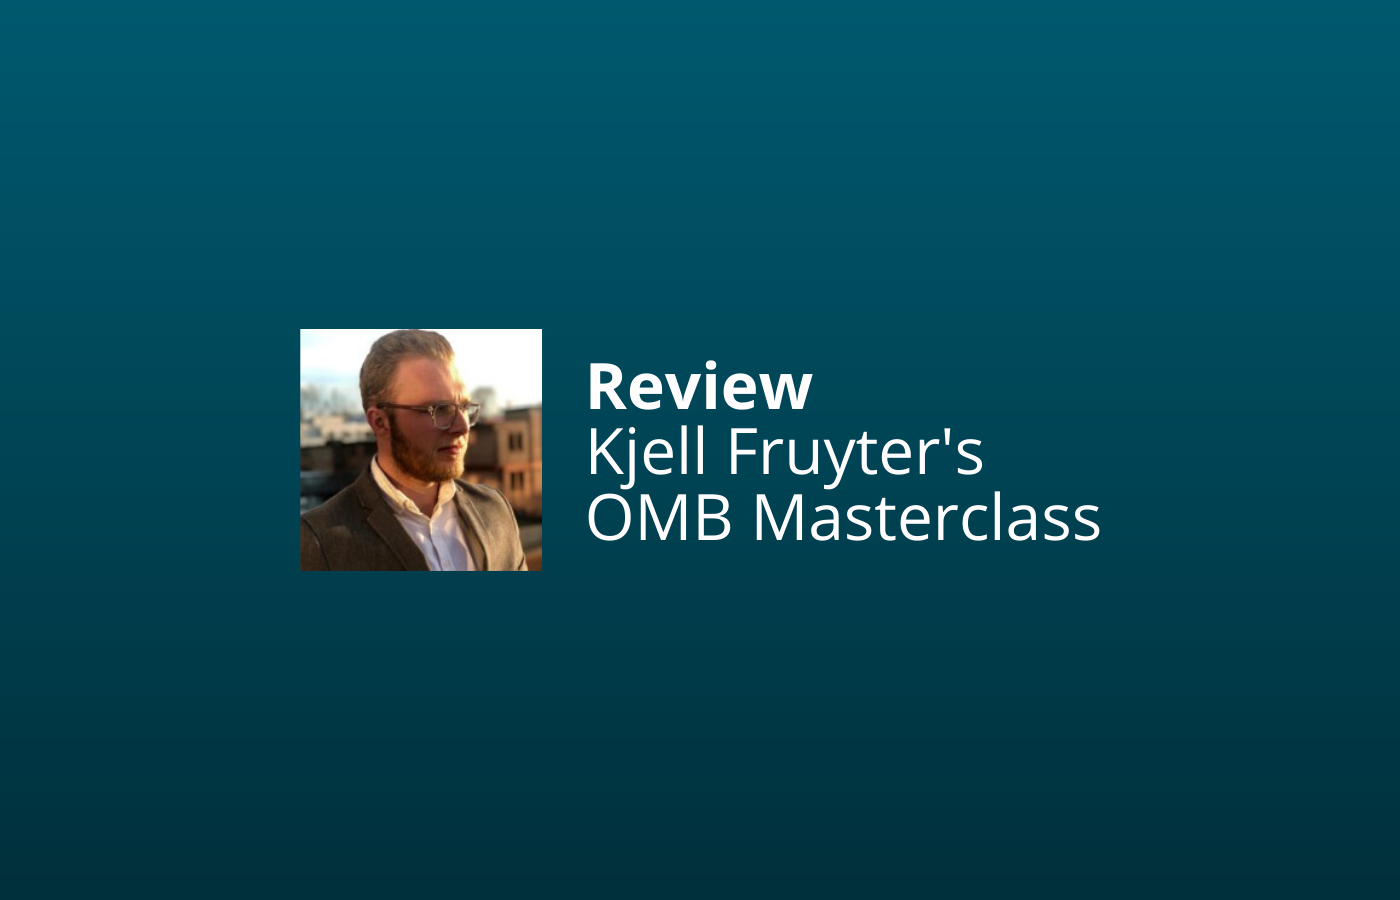 omb masterclass review